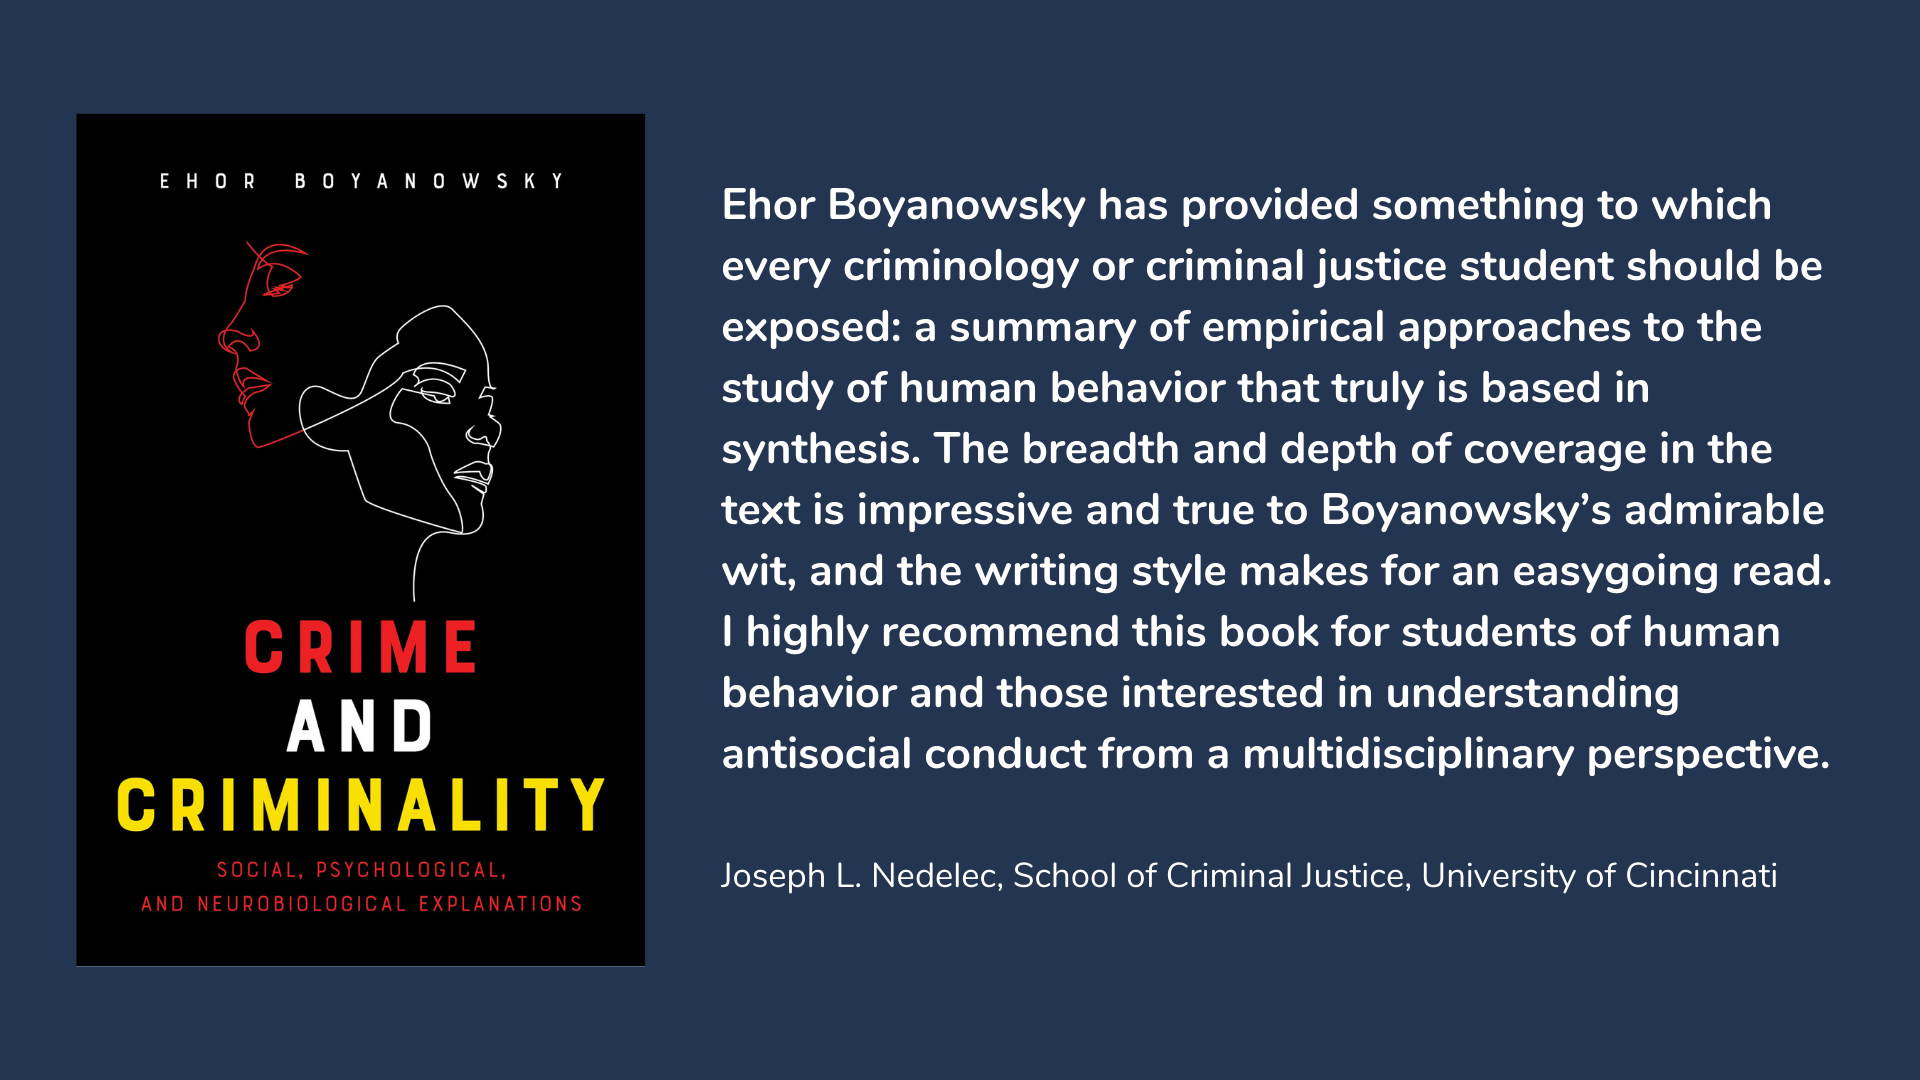 Crime and Criminality: Social, Psychological and Neurobiological Explanations